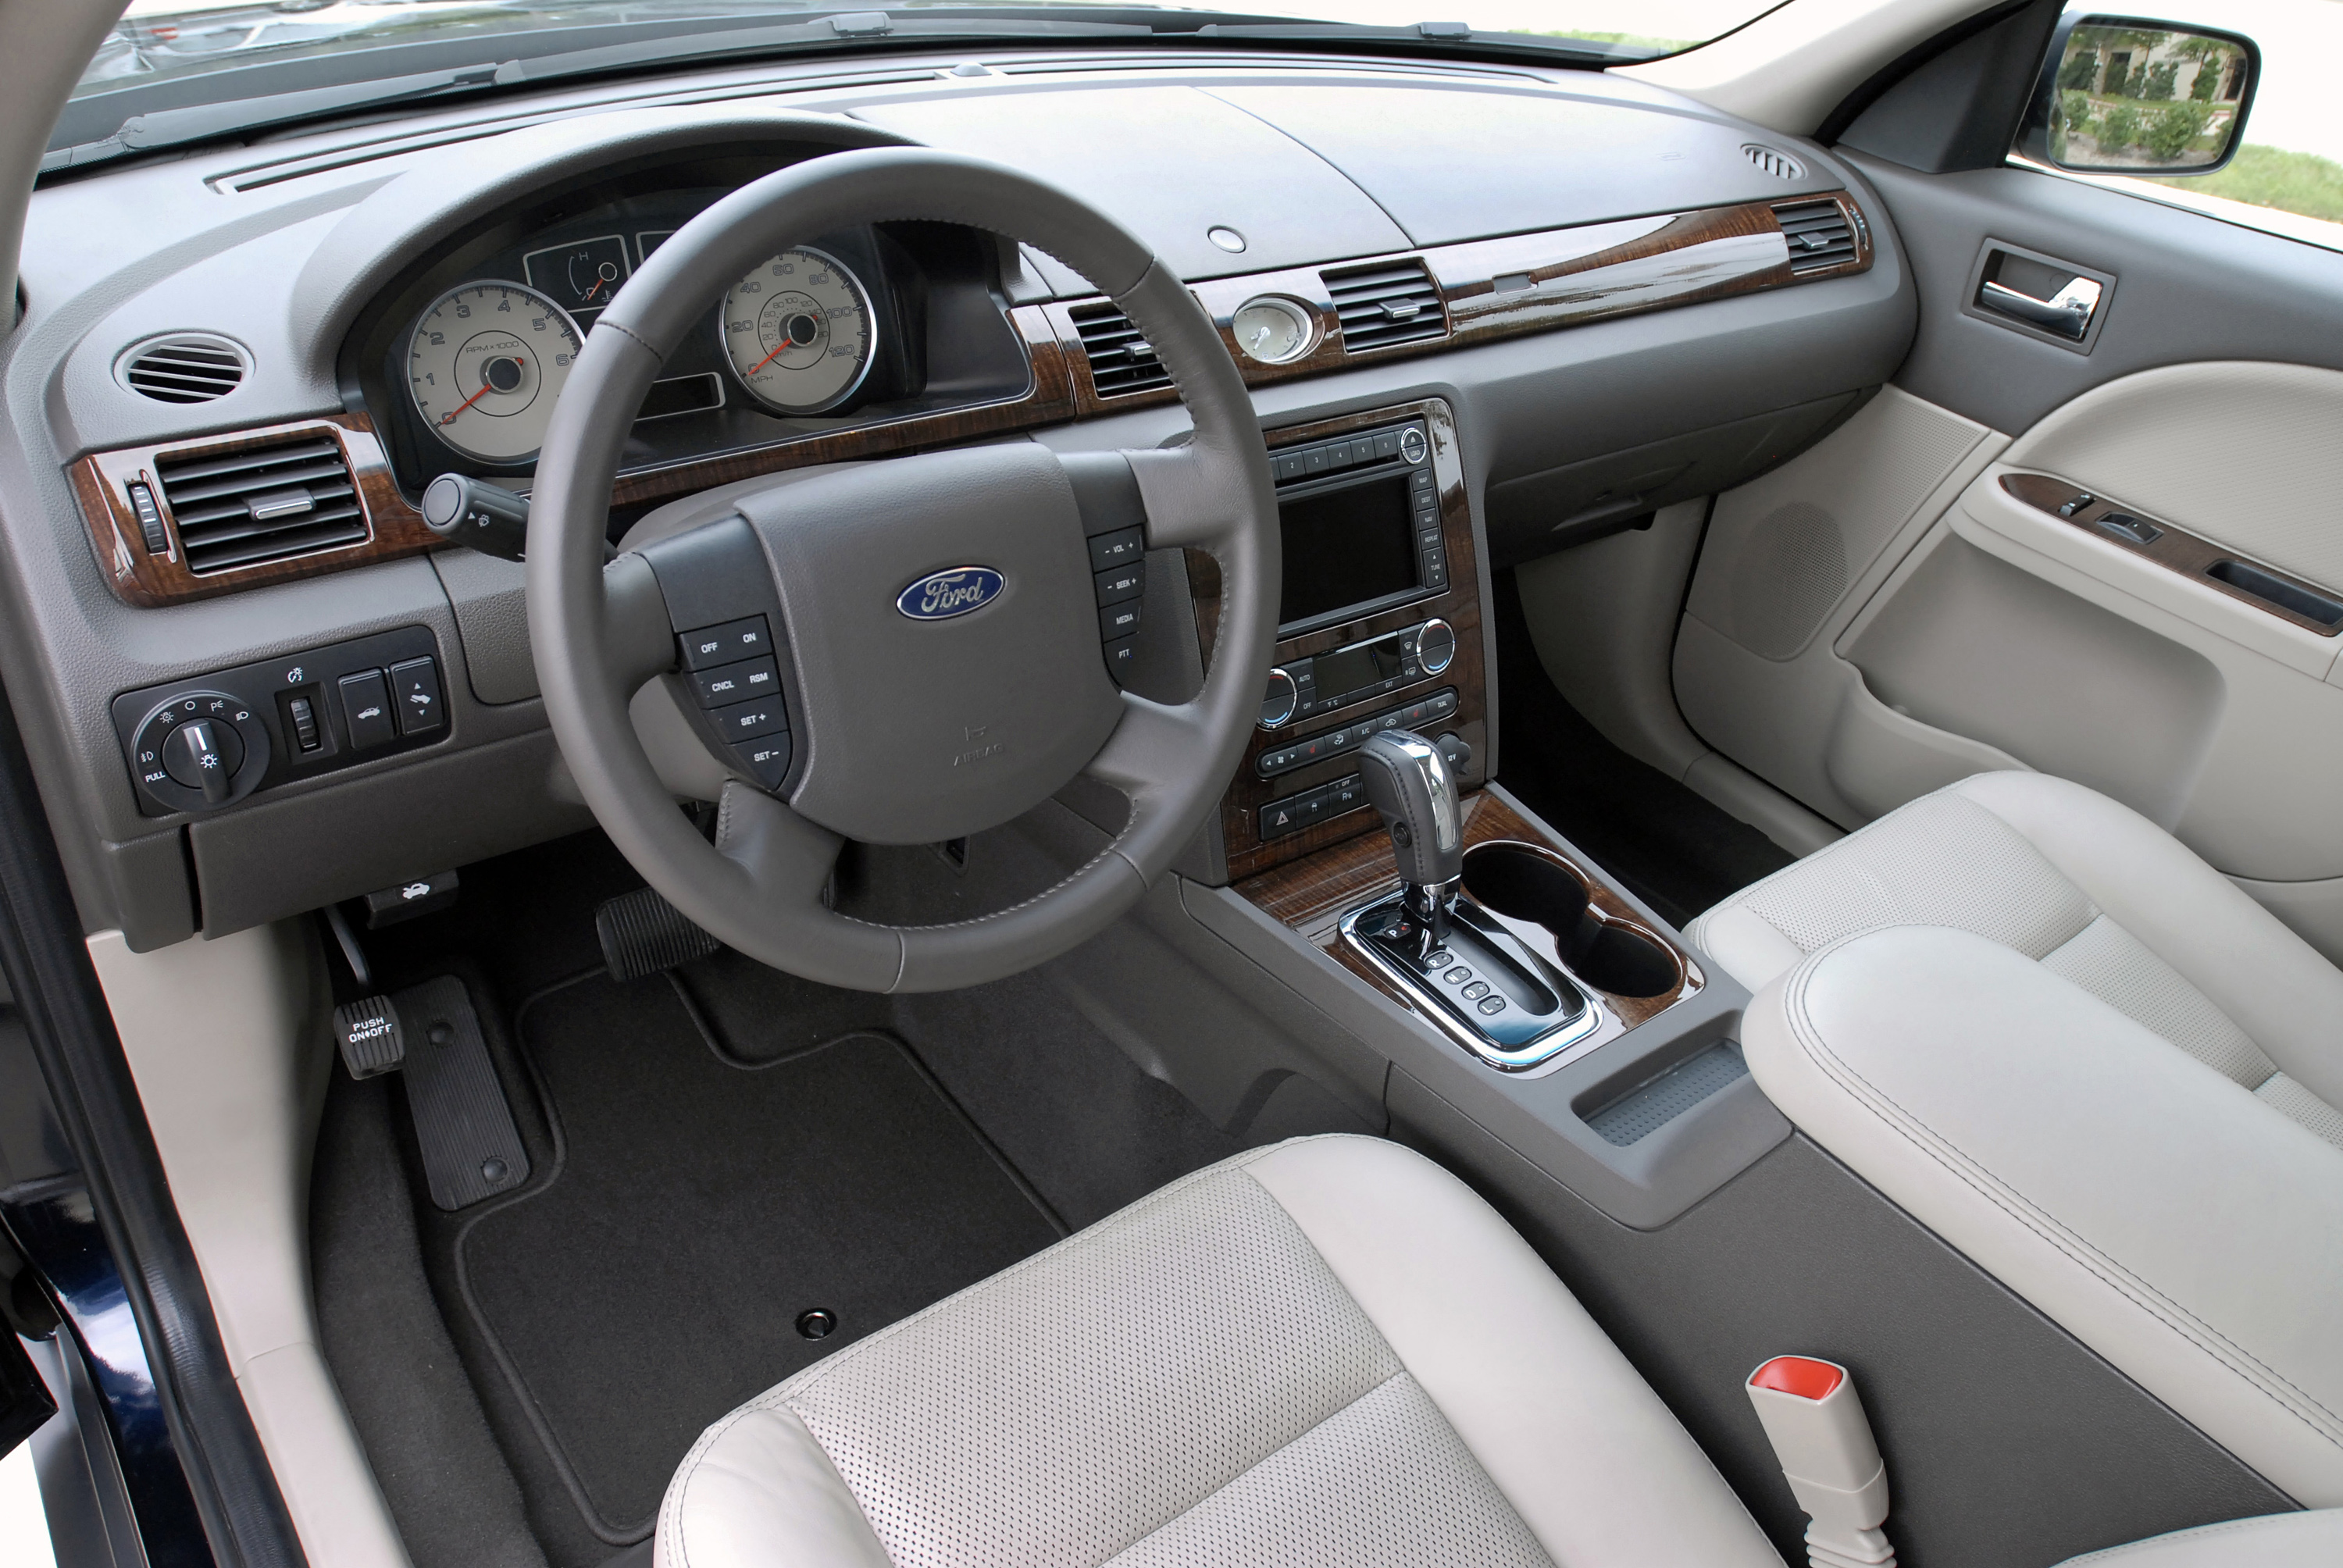 Taurus Perfect Match >> 2008 Ford Taurus Review - Who Says You Can't Go Home Again?